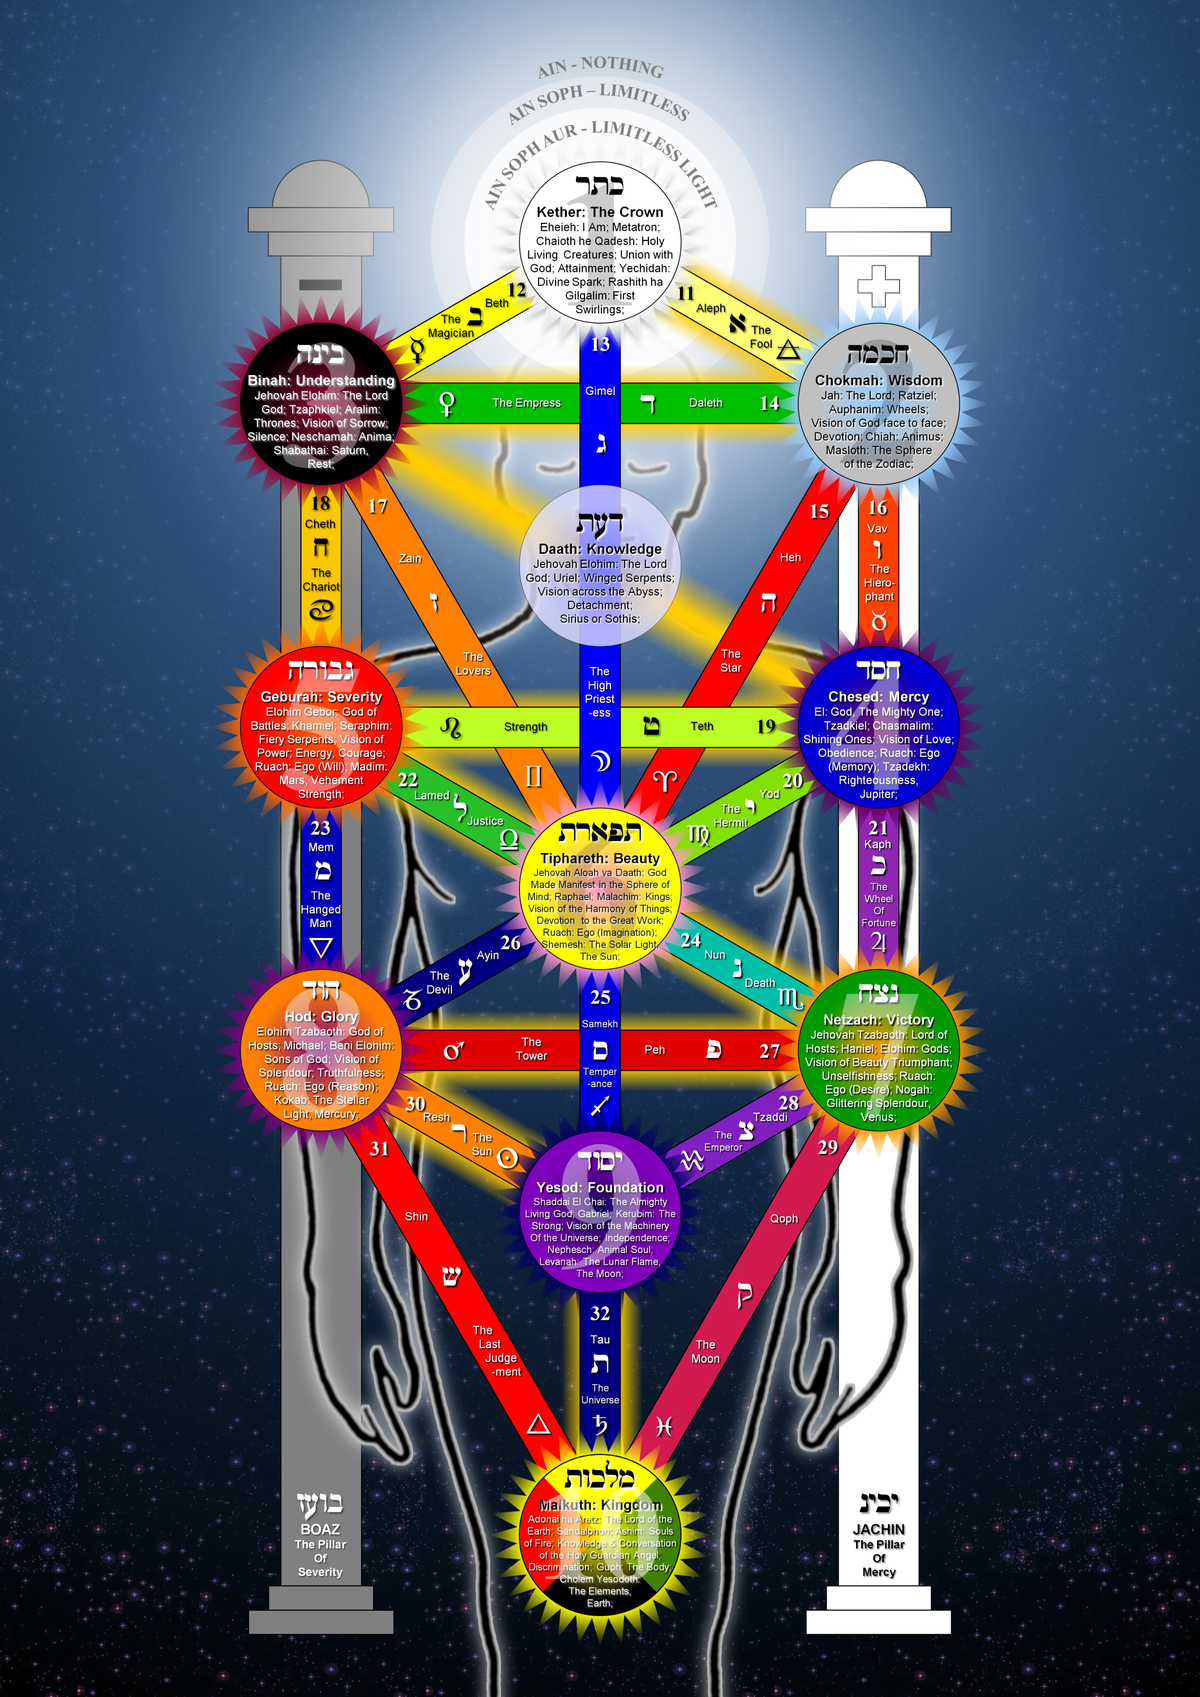 File Tree Of Life 2009 Large Png Wikimedia Commons The tree of life is a map; file tree of life 2009 large png